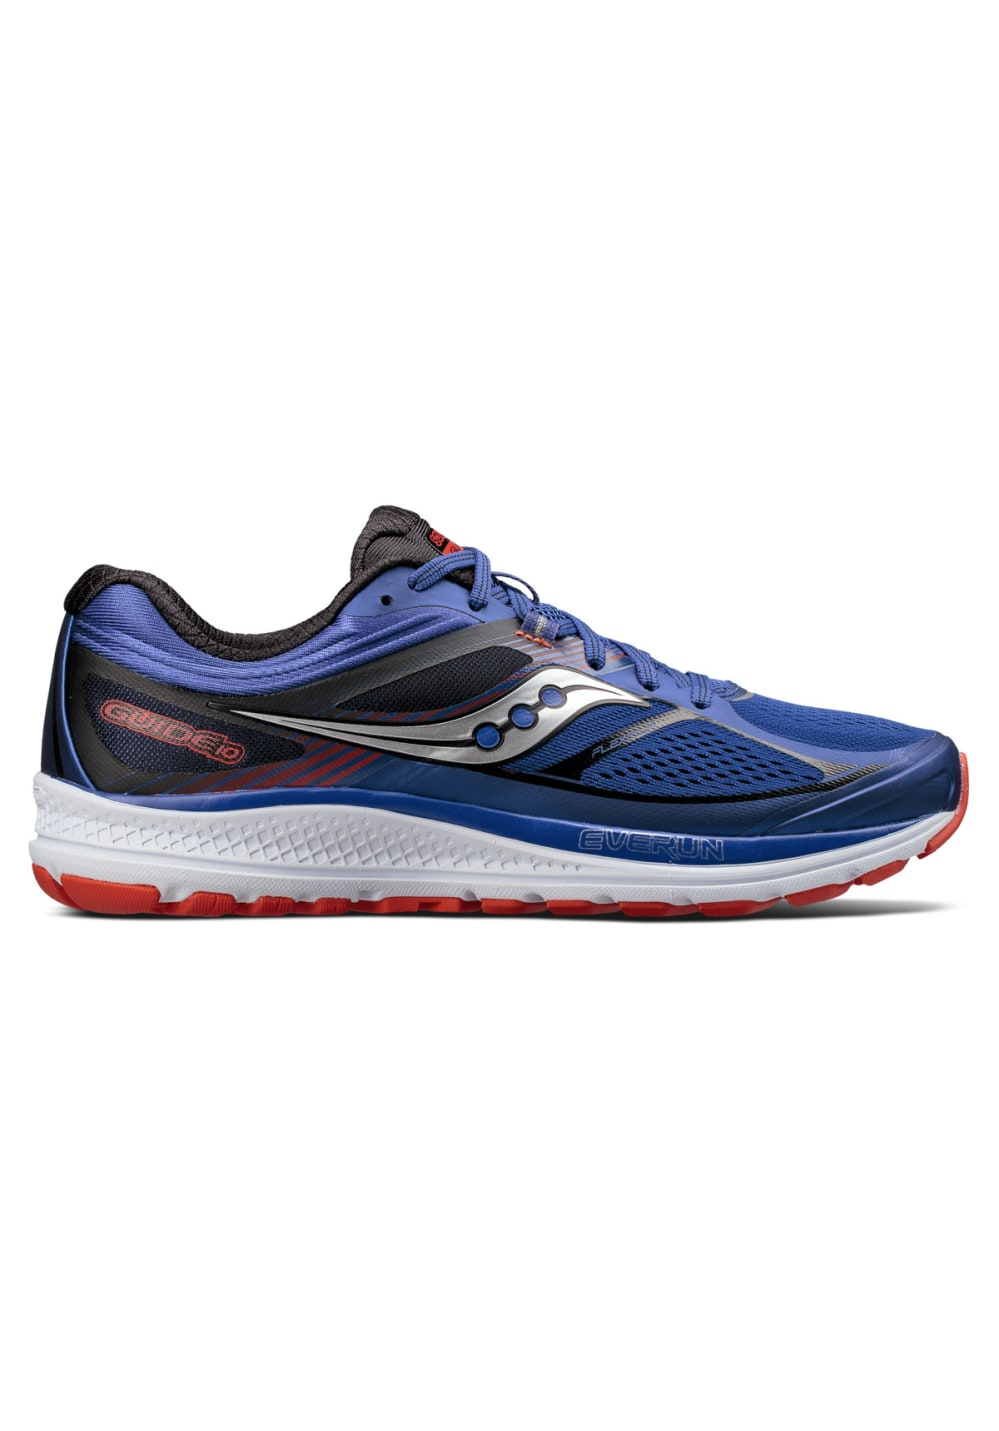 Saucony Guide 10 Hommes Chaussures running